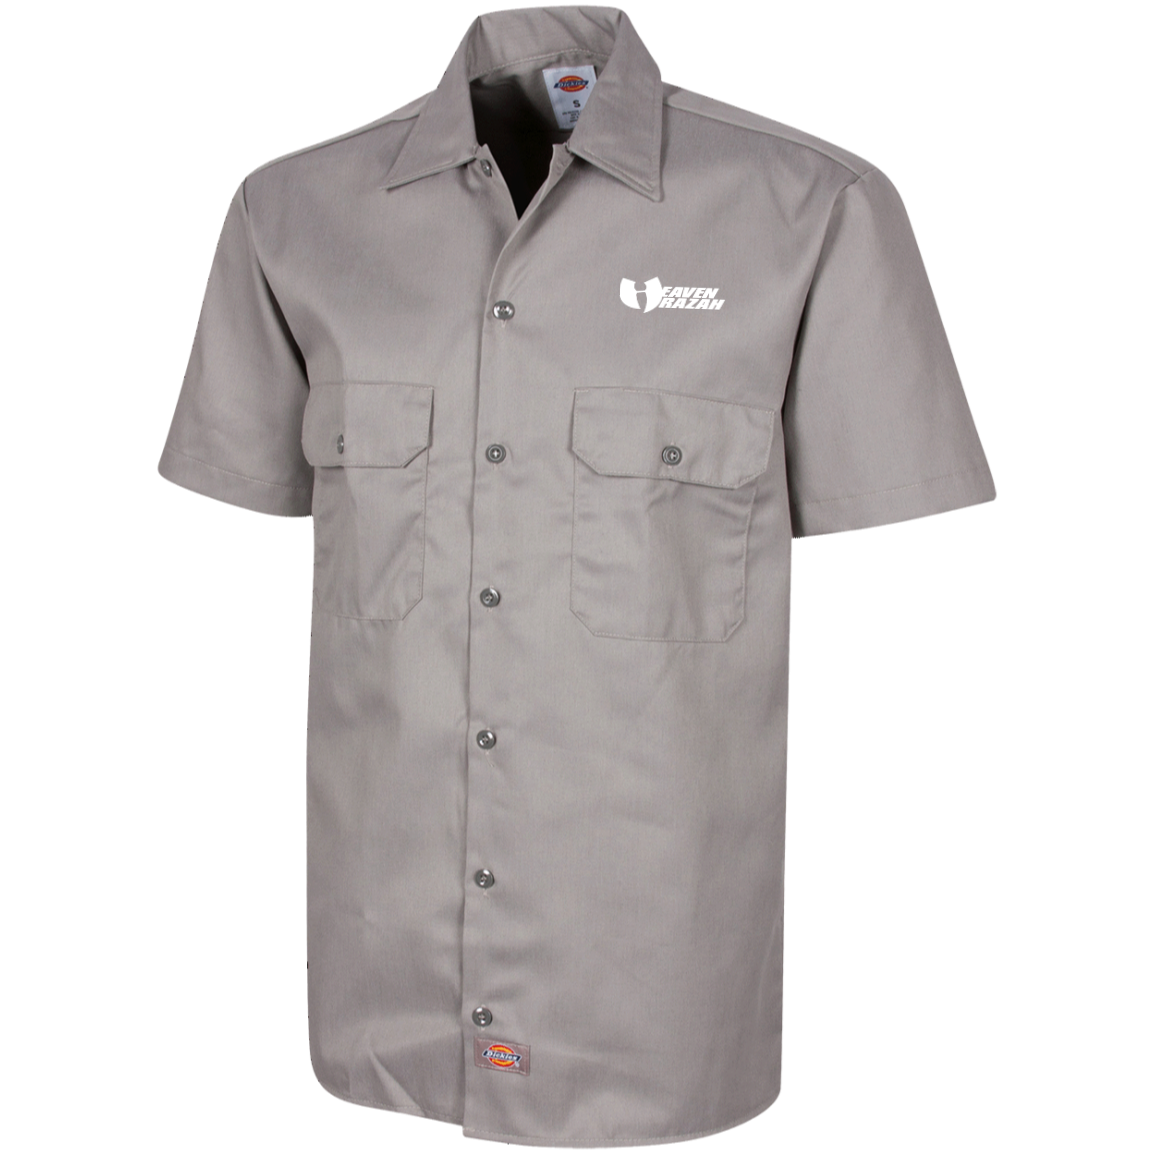 HRMI HeavenRazah Name Logo HellRazah Music Inc. Dickies Men's Short Sleeve Workshirt Graphics by Culture Freedom